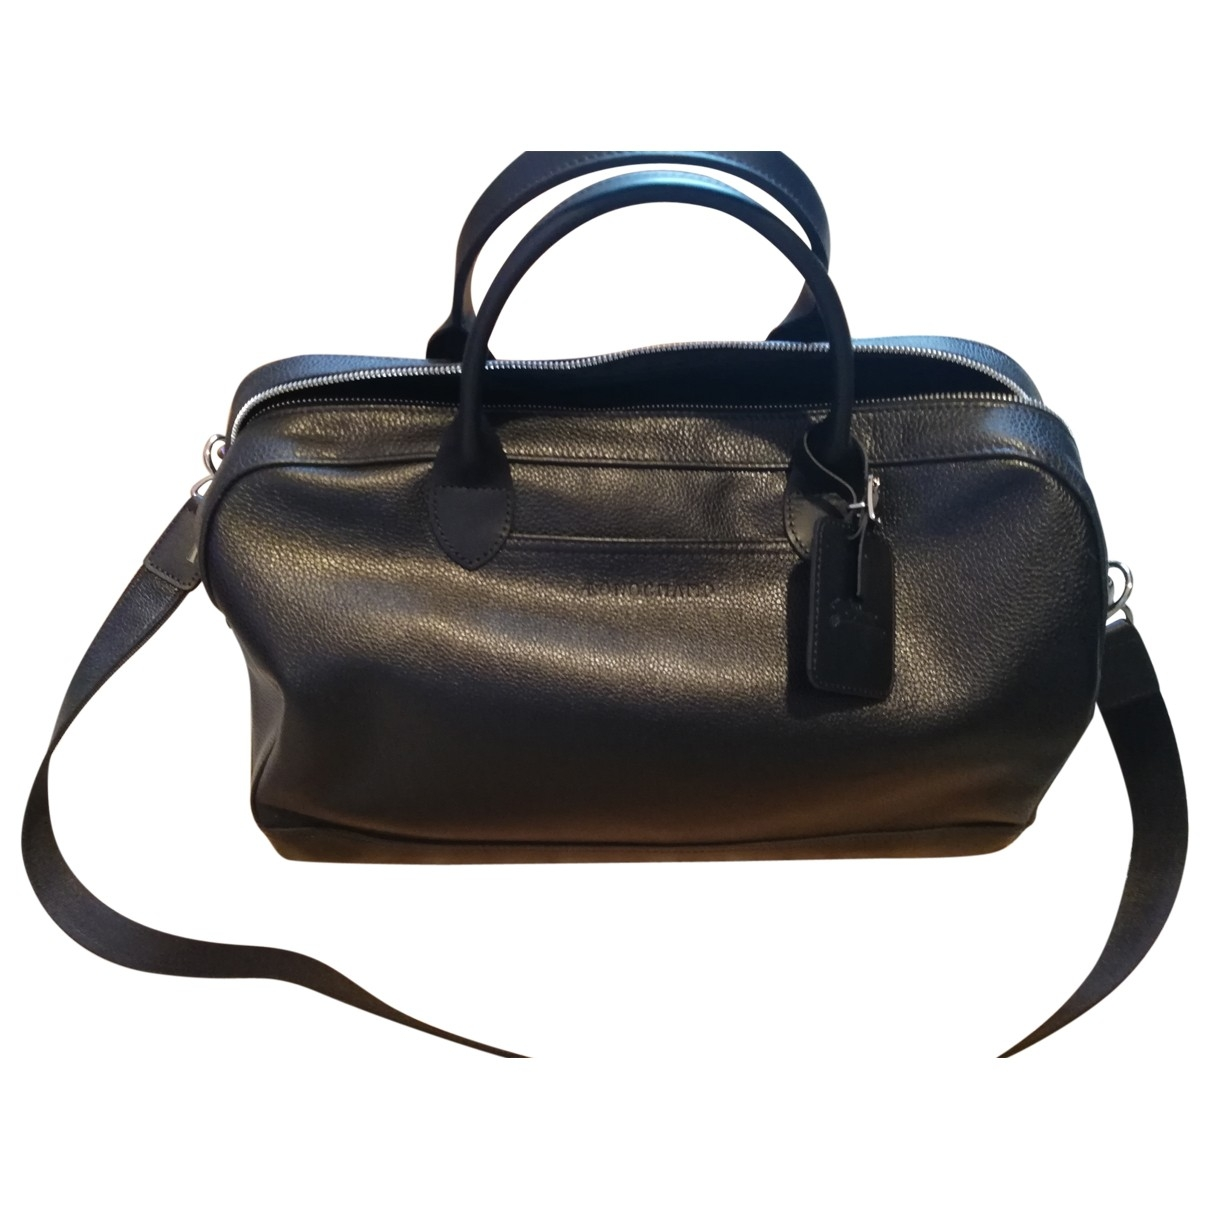 Longchamp \N Black Leather Travel bag for Women \N